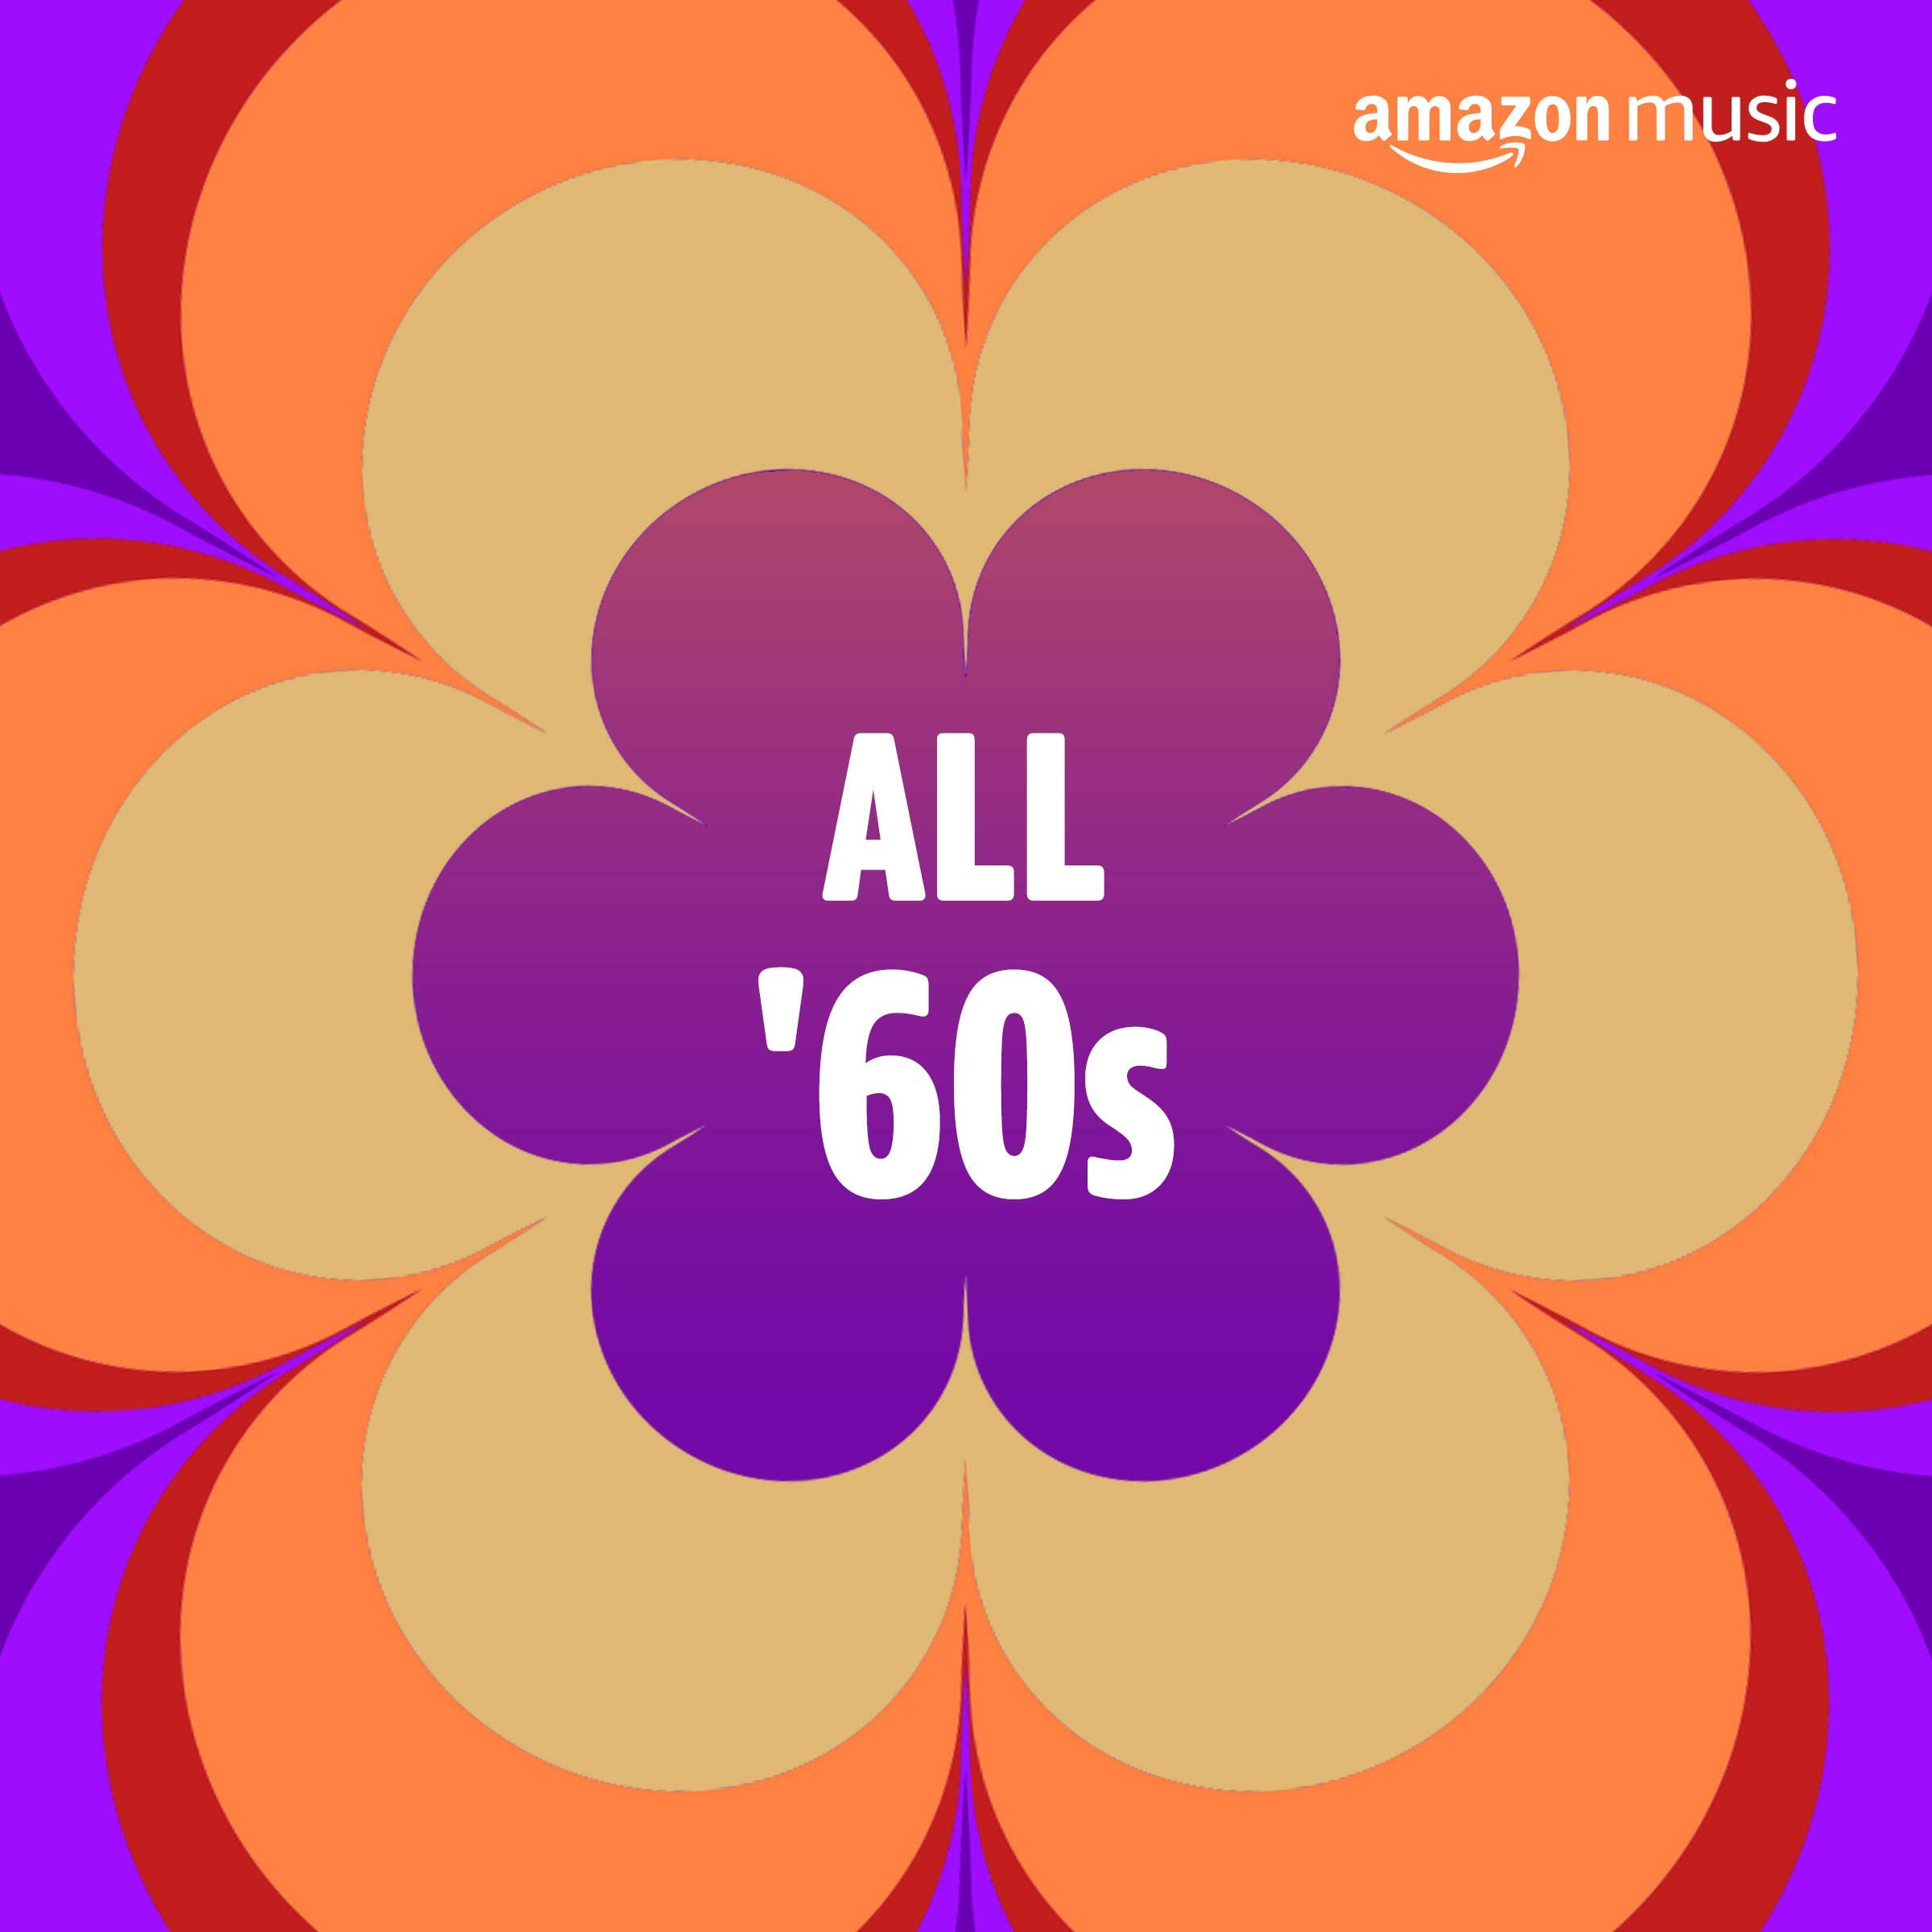 All '60s